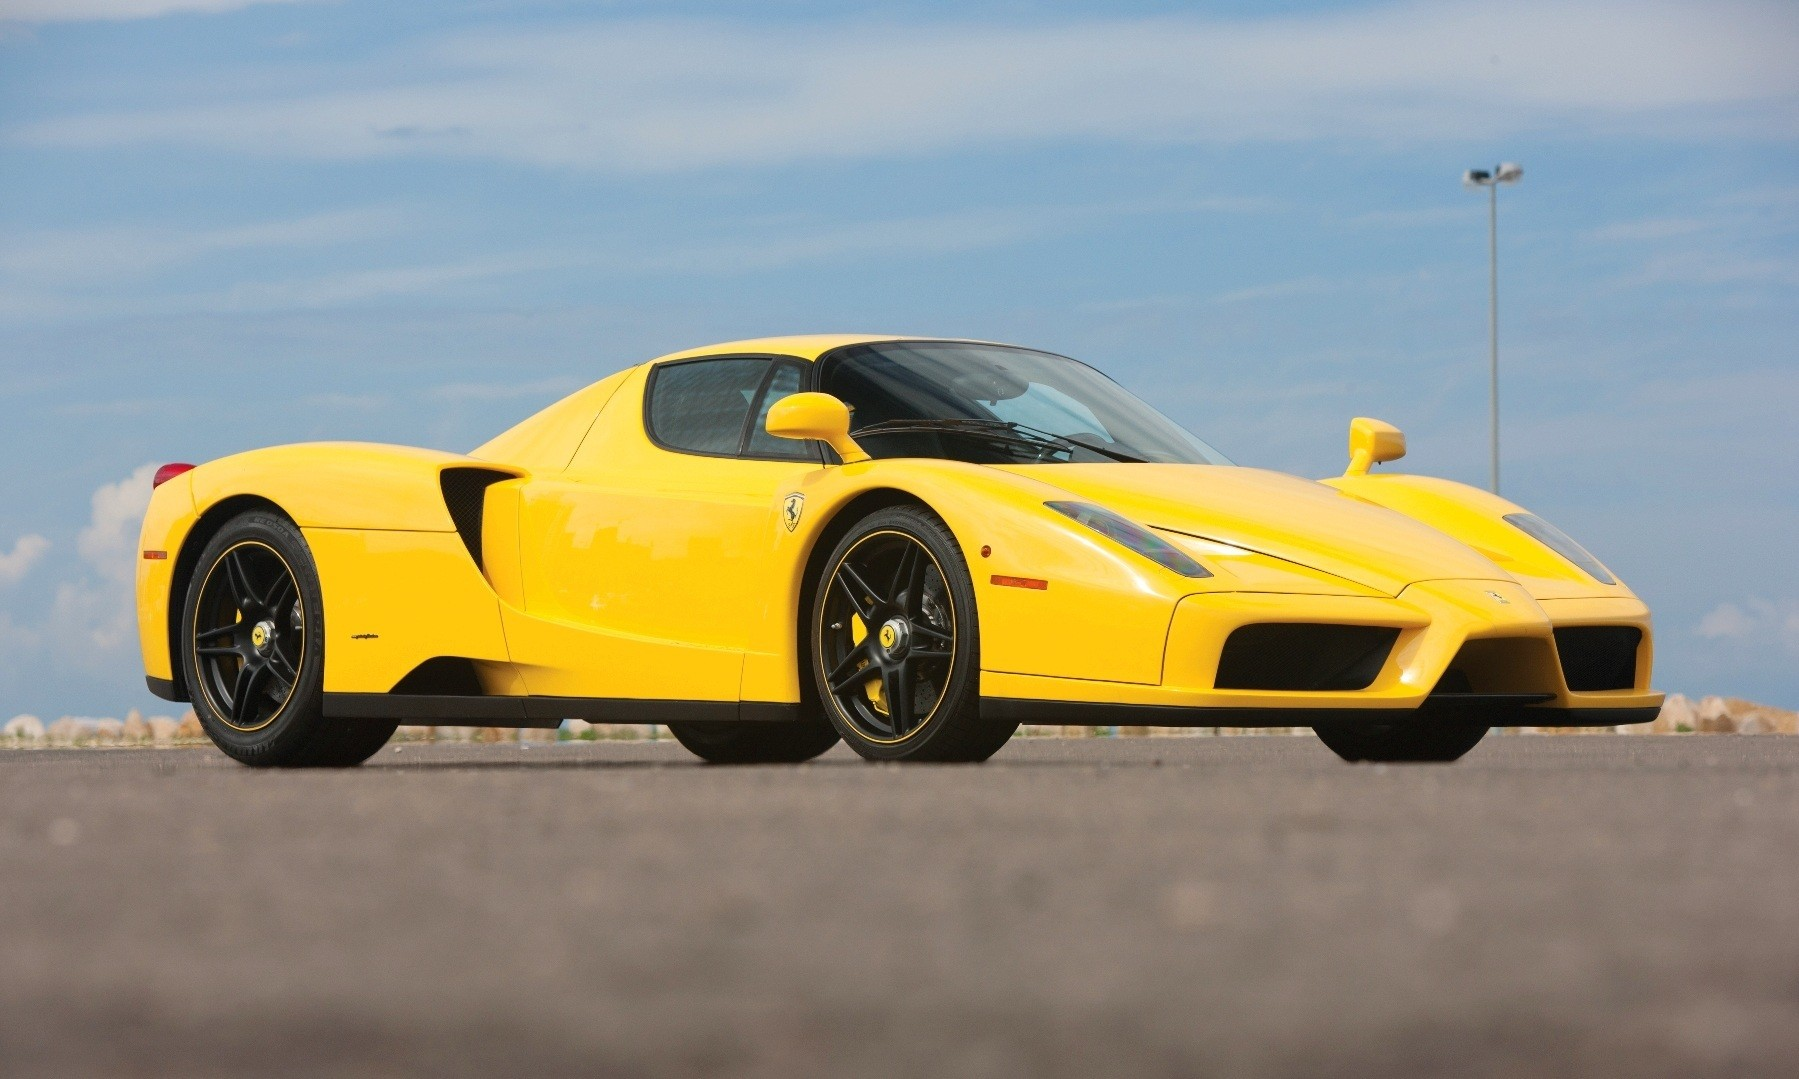 rm monaco 2014 highlights 2003 ferrari enzo in yellow over black 1 - Ferrari 2014 Yellow